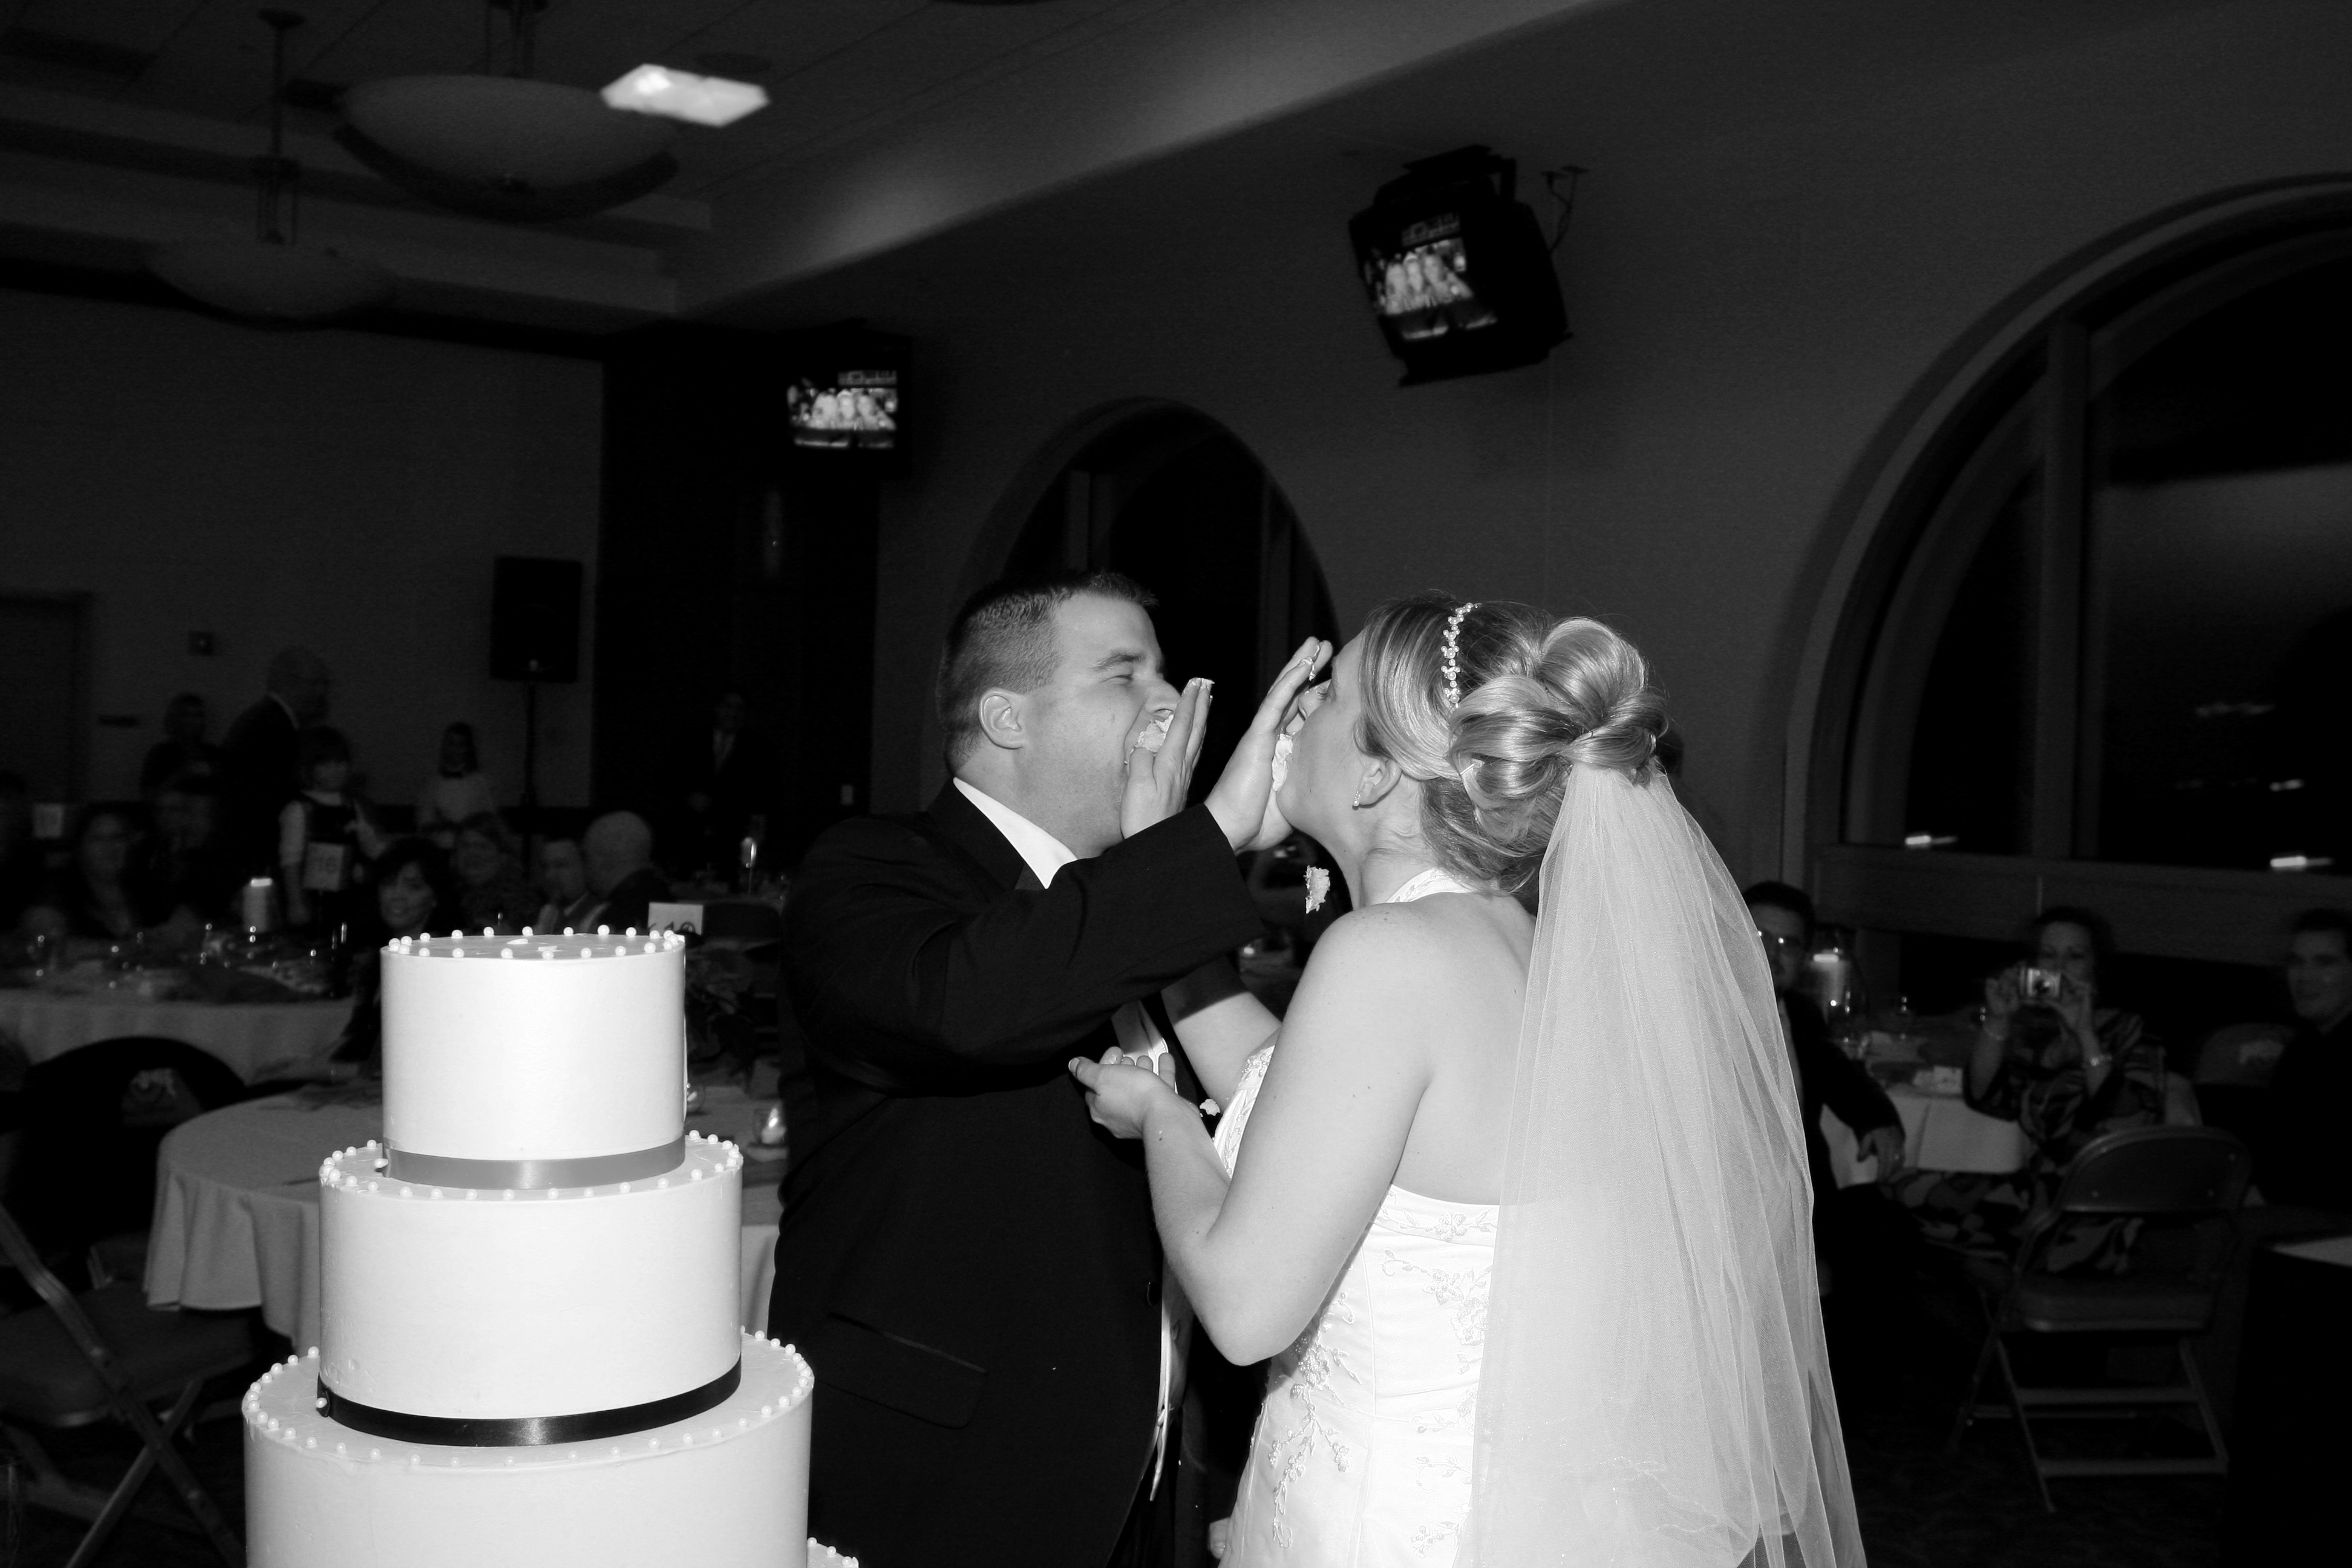 Cakes, cake, Cutting, Kollmer photography